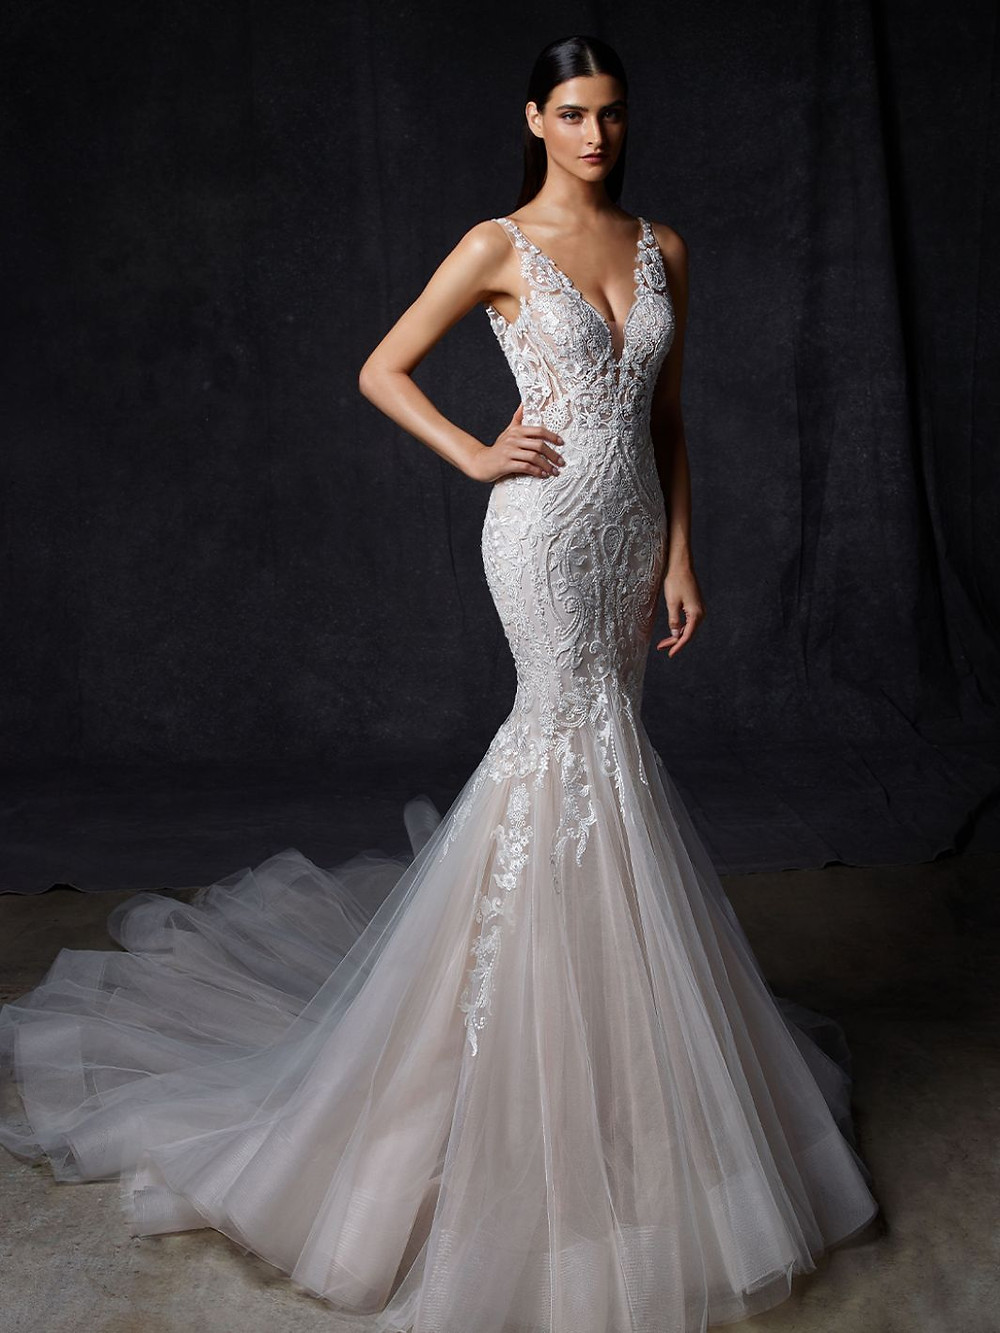 An Enzoani lace mermaid wedding dress with straps and a tulle skirt